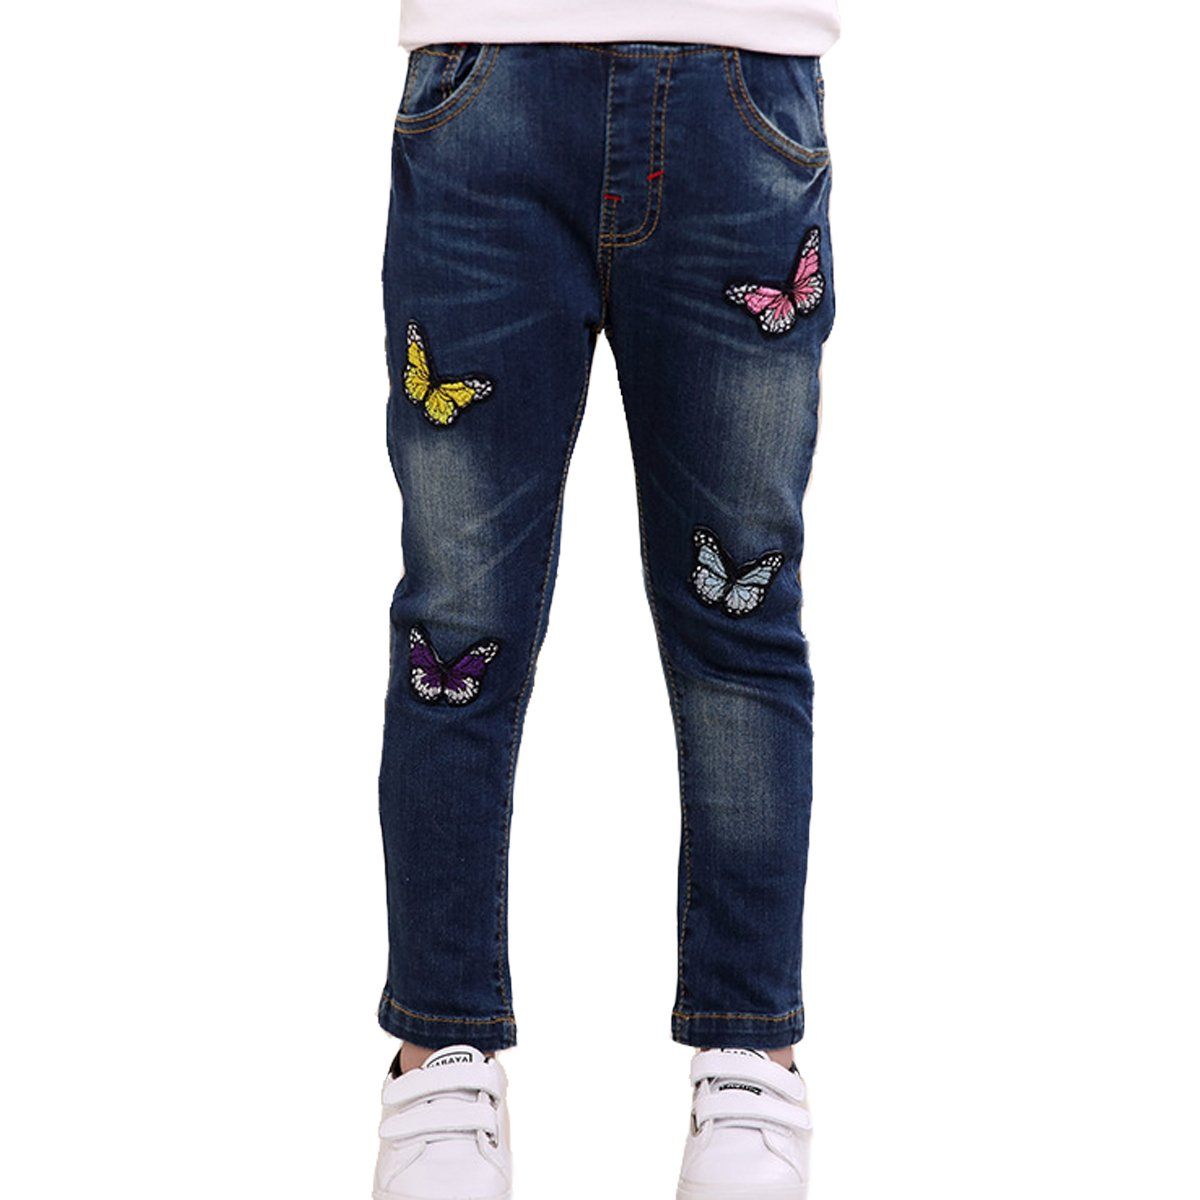 NABER Kids Girls' Fashion Butterfly Elastic Waist Denim Pants Jeans Age 4-13 Yrs